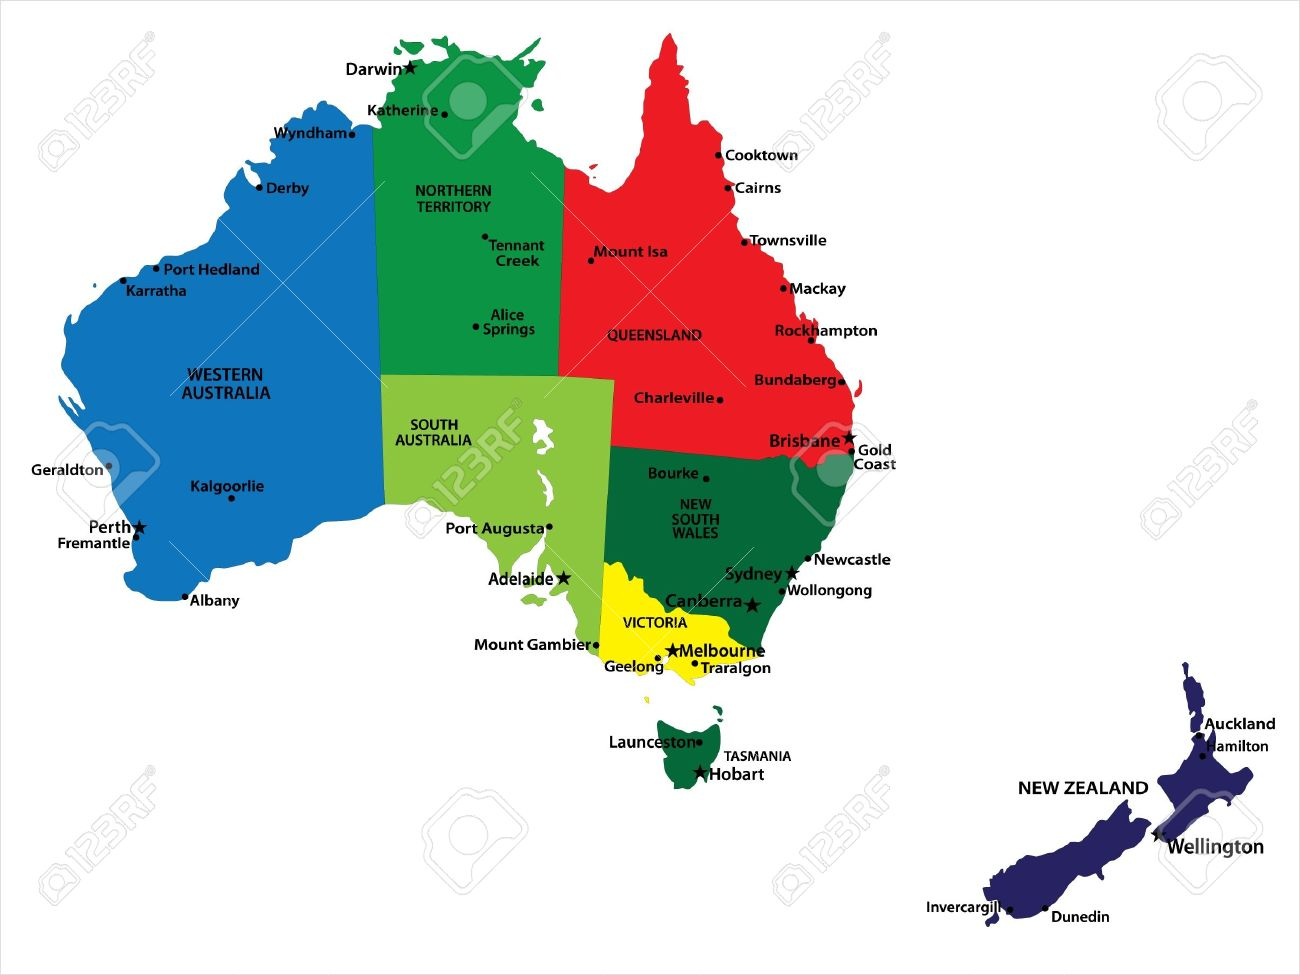 New Zealand Australia Map.Australia And New Zealand Map